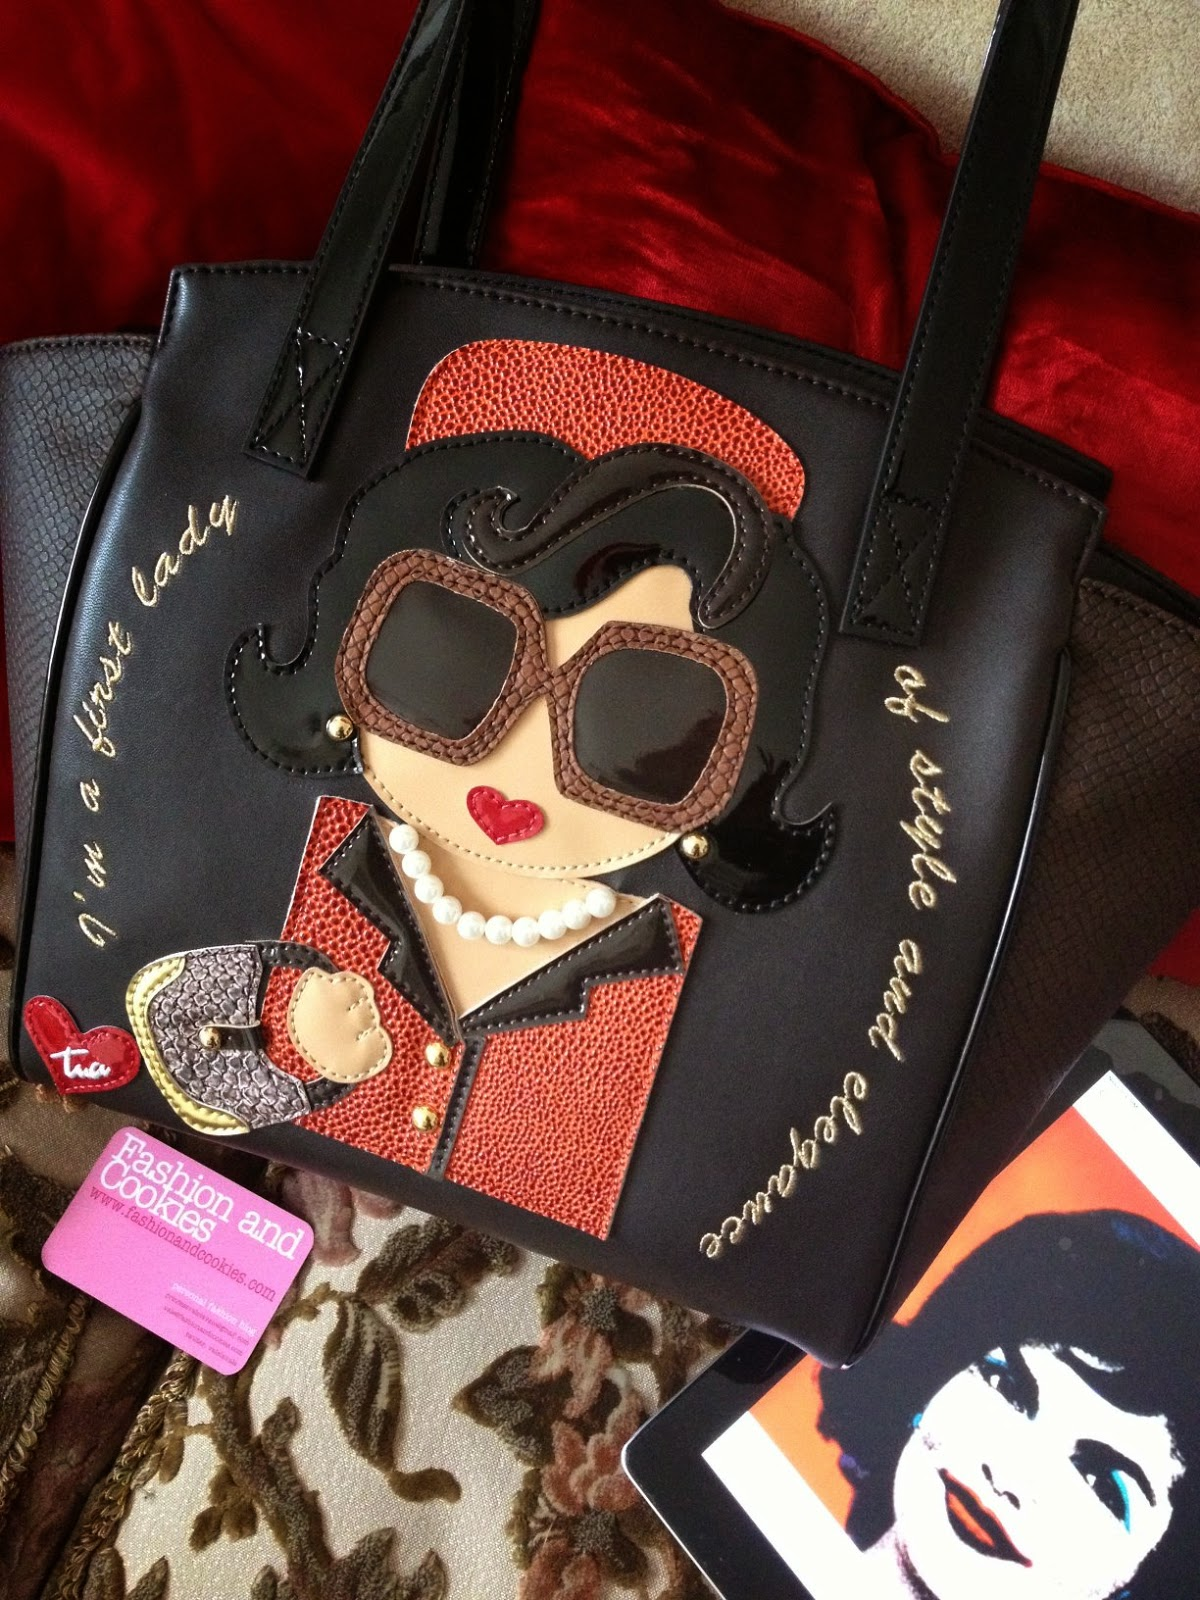 Braccialini Icons, Braccialini Tua, Jackie Kennedy bag, Fashion and Cookies, fashion blogger